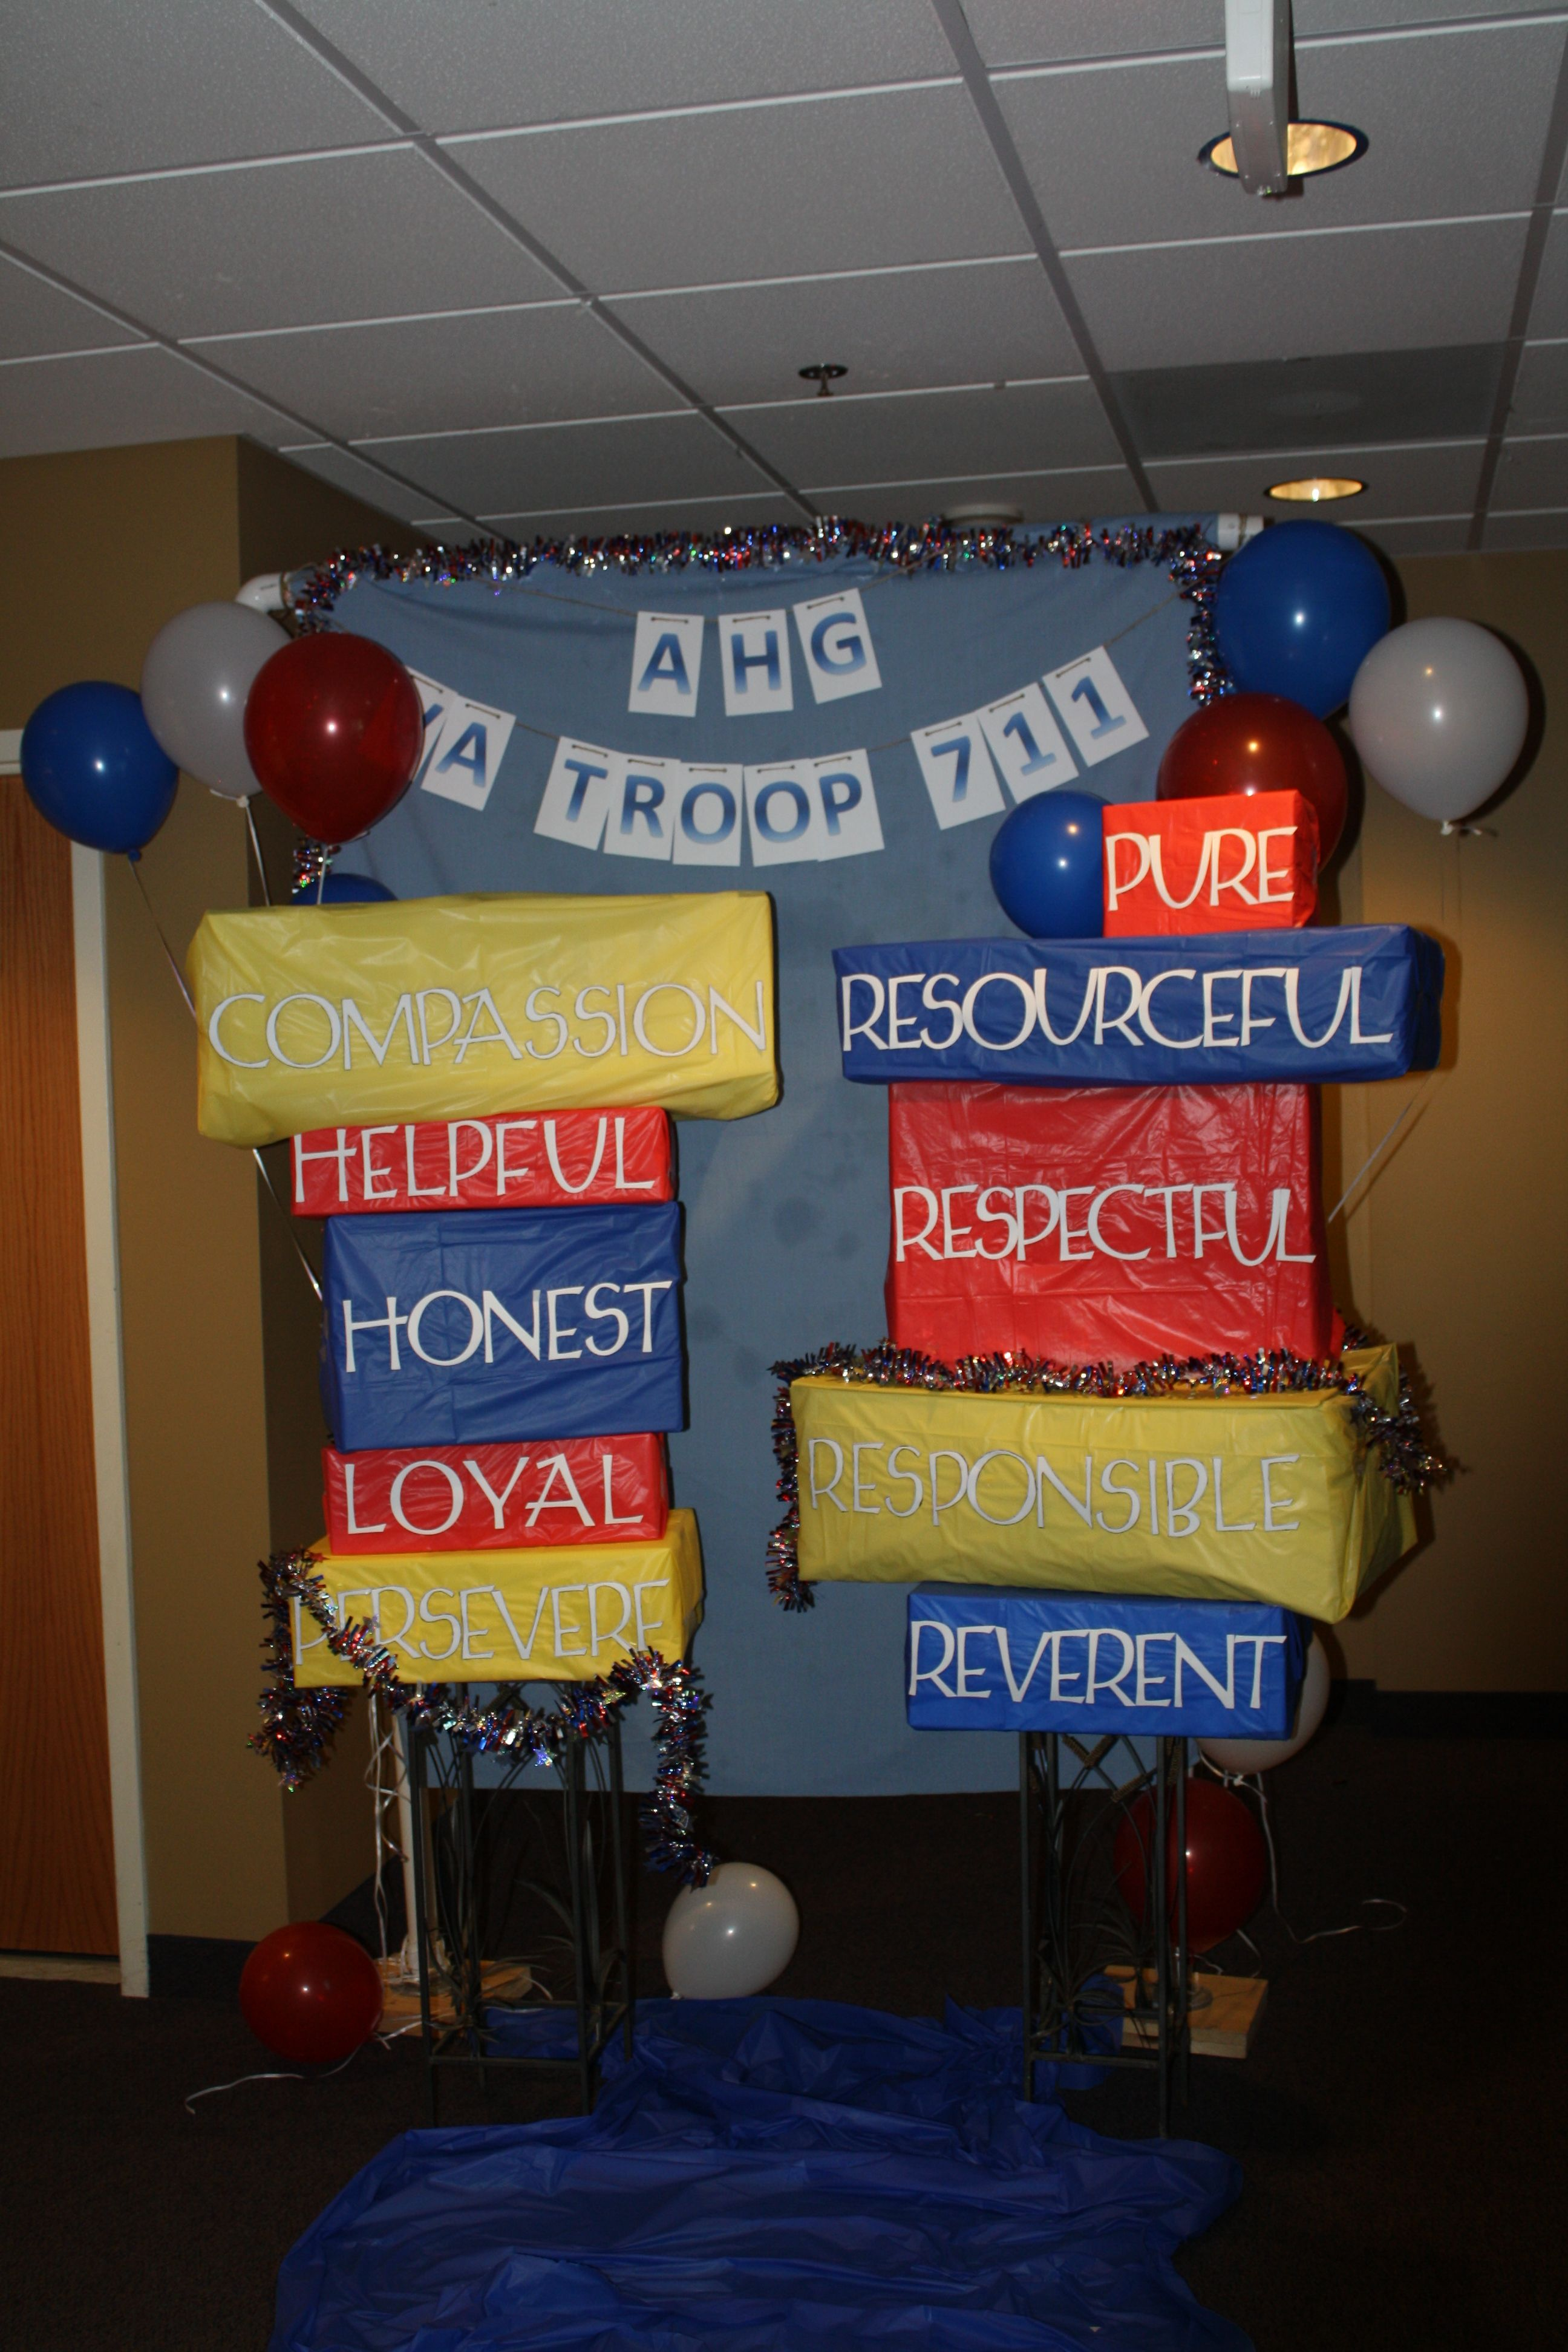 A Fun Photo Booth Idea It Highlights The Joy Of Ahg And